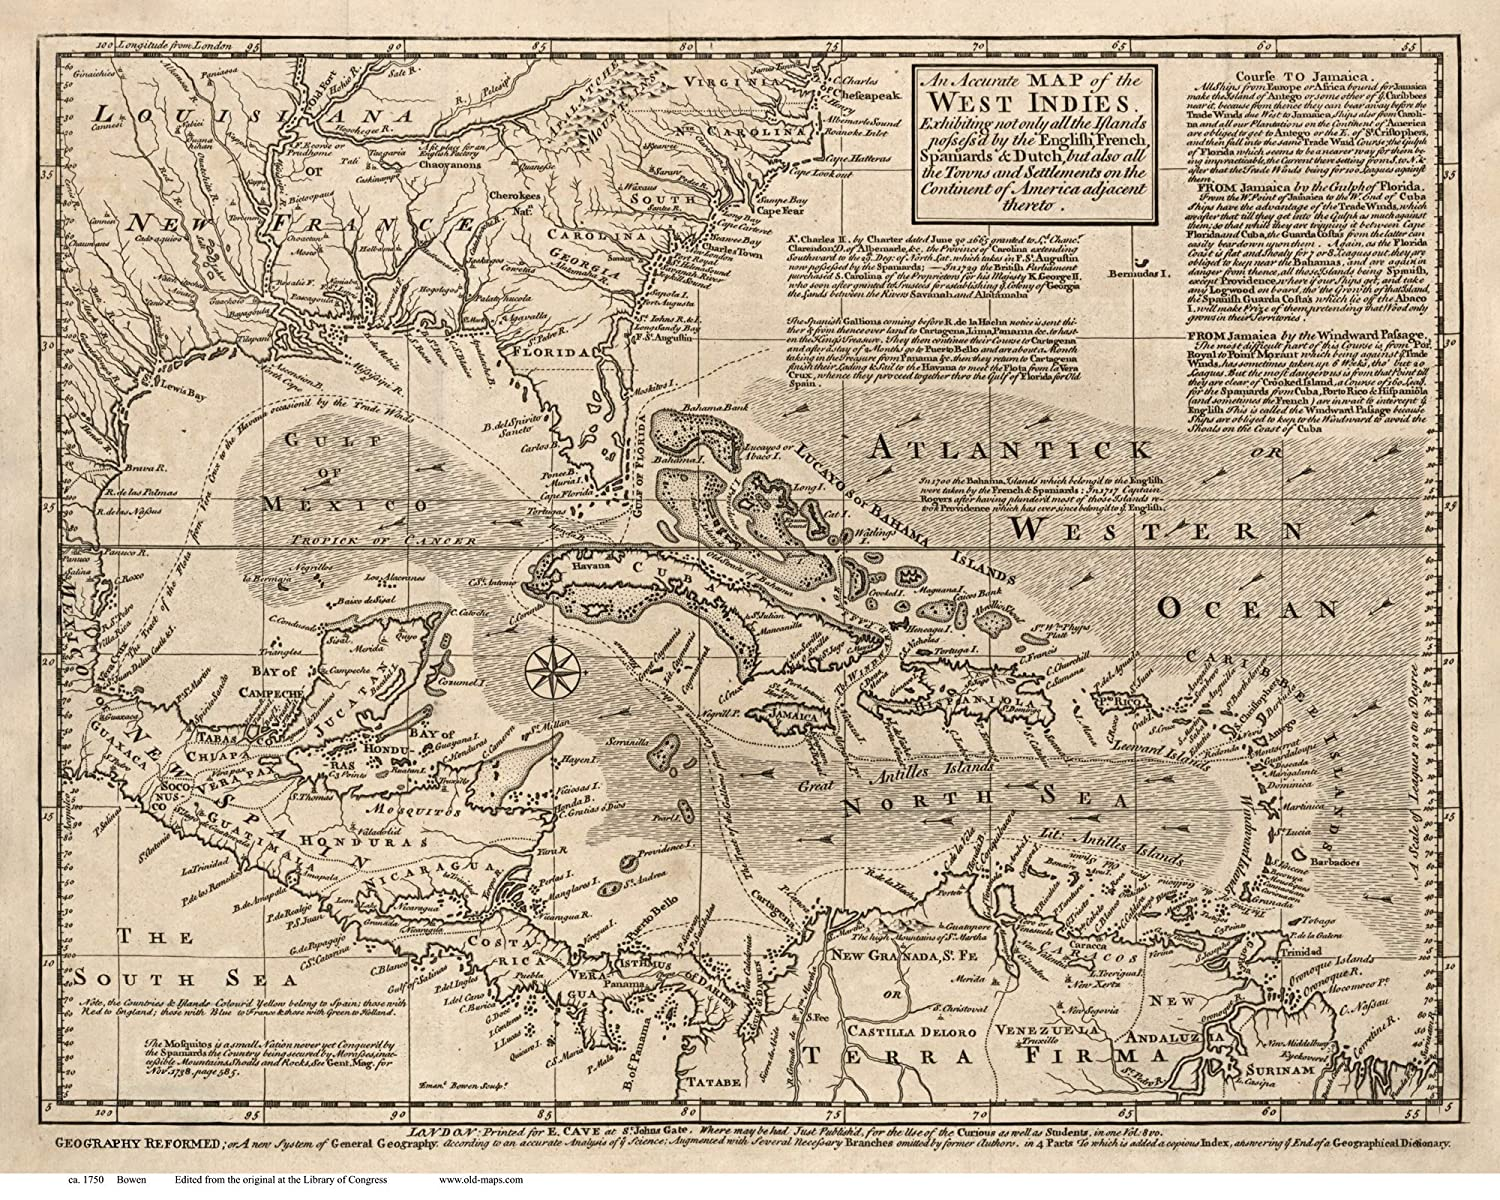 Amazon.com: Caribbean 1750 Map by Bowen - Reprint Cuba ... on map of ferry, map of crane, map of lindstrom, map of whitaker, map of axtell, map of mabelvale, map of bottineau, map of winsted, map of carter, map of morr, map of carr, map of matthews, map of hubbard, map of st anthony, map of waite park, map of crittenden county, map of null, map of bankhead, map of andrews, map of shore,